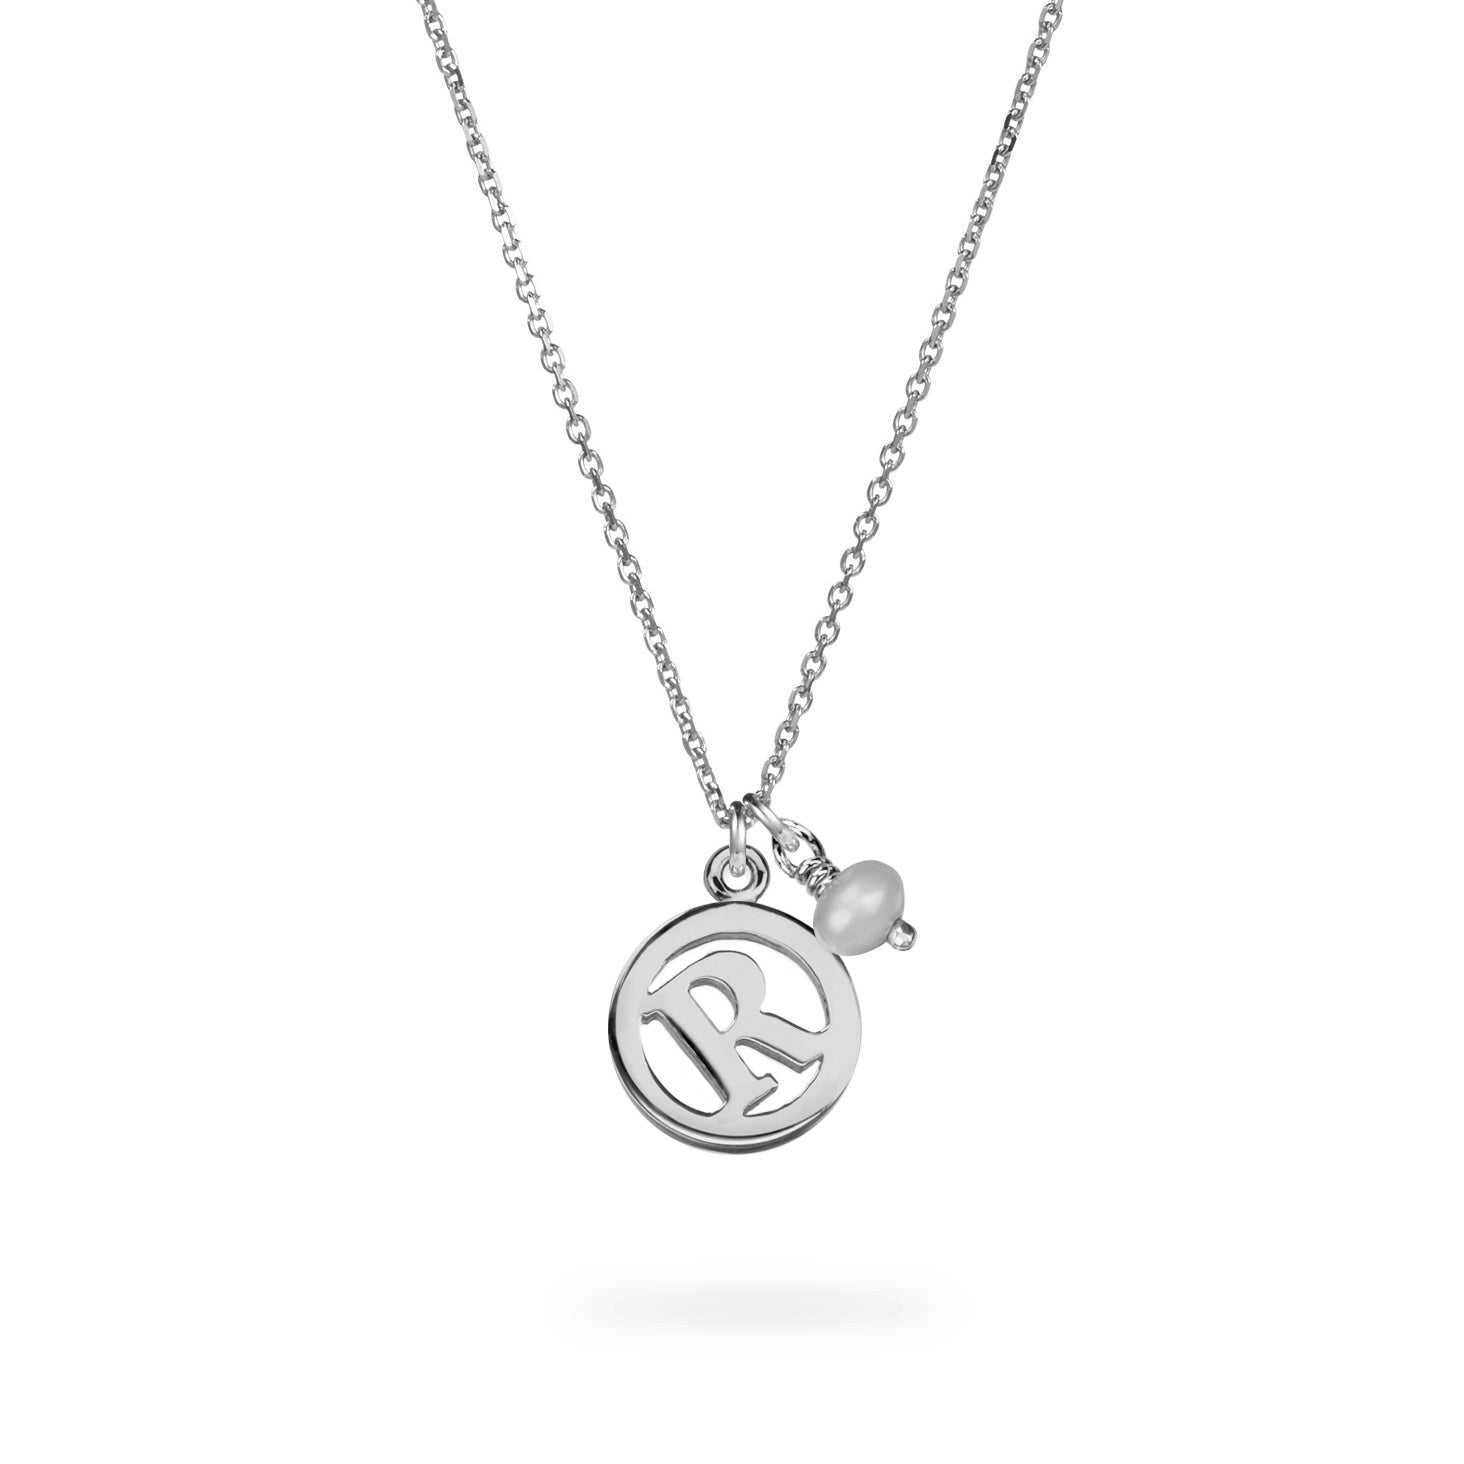 Luke Rose Jewellery silver pearl initial necklace